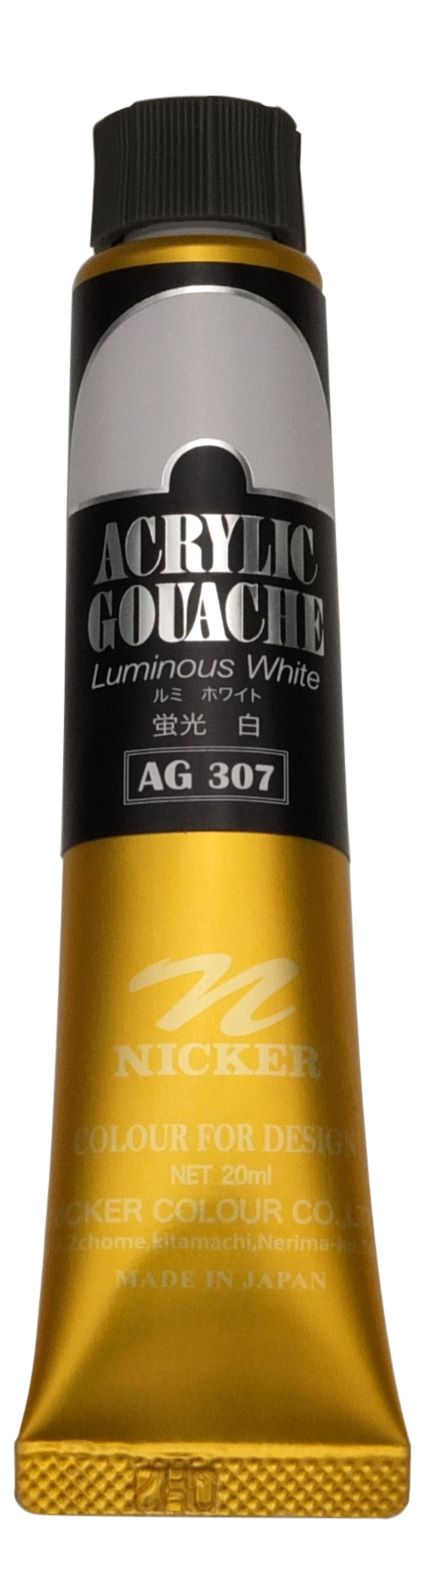 <Discontinued> ACRYLIC GOUACHE 20ml AG307 LUMINOUS WHITE